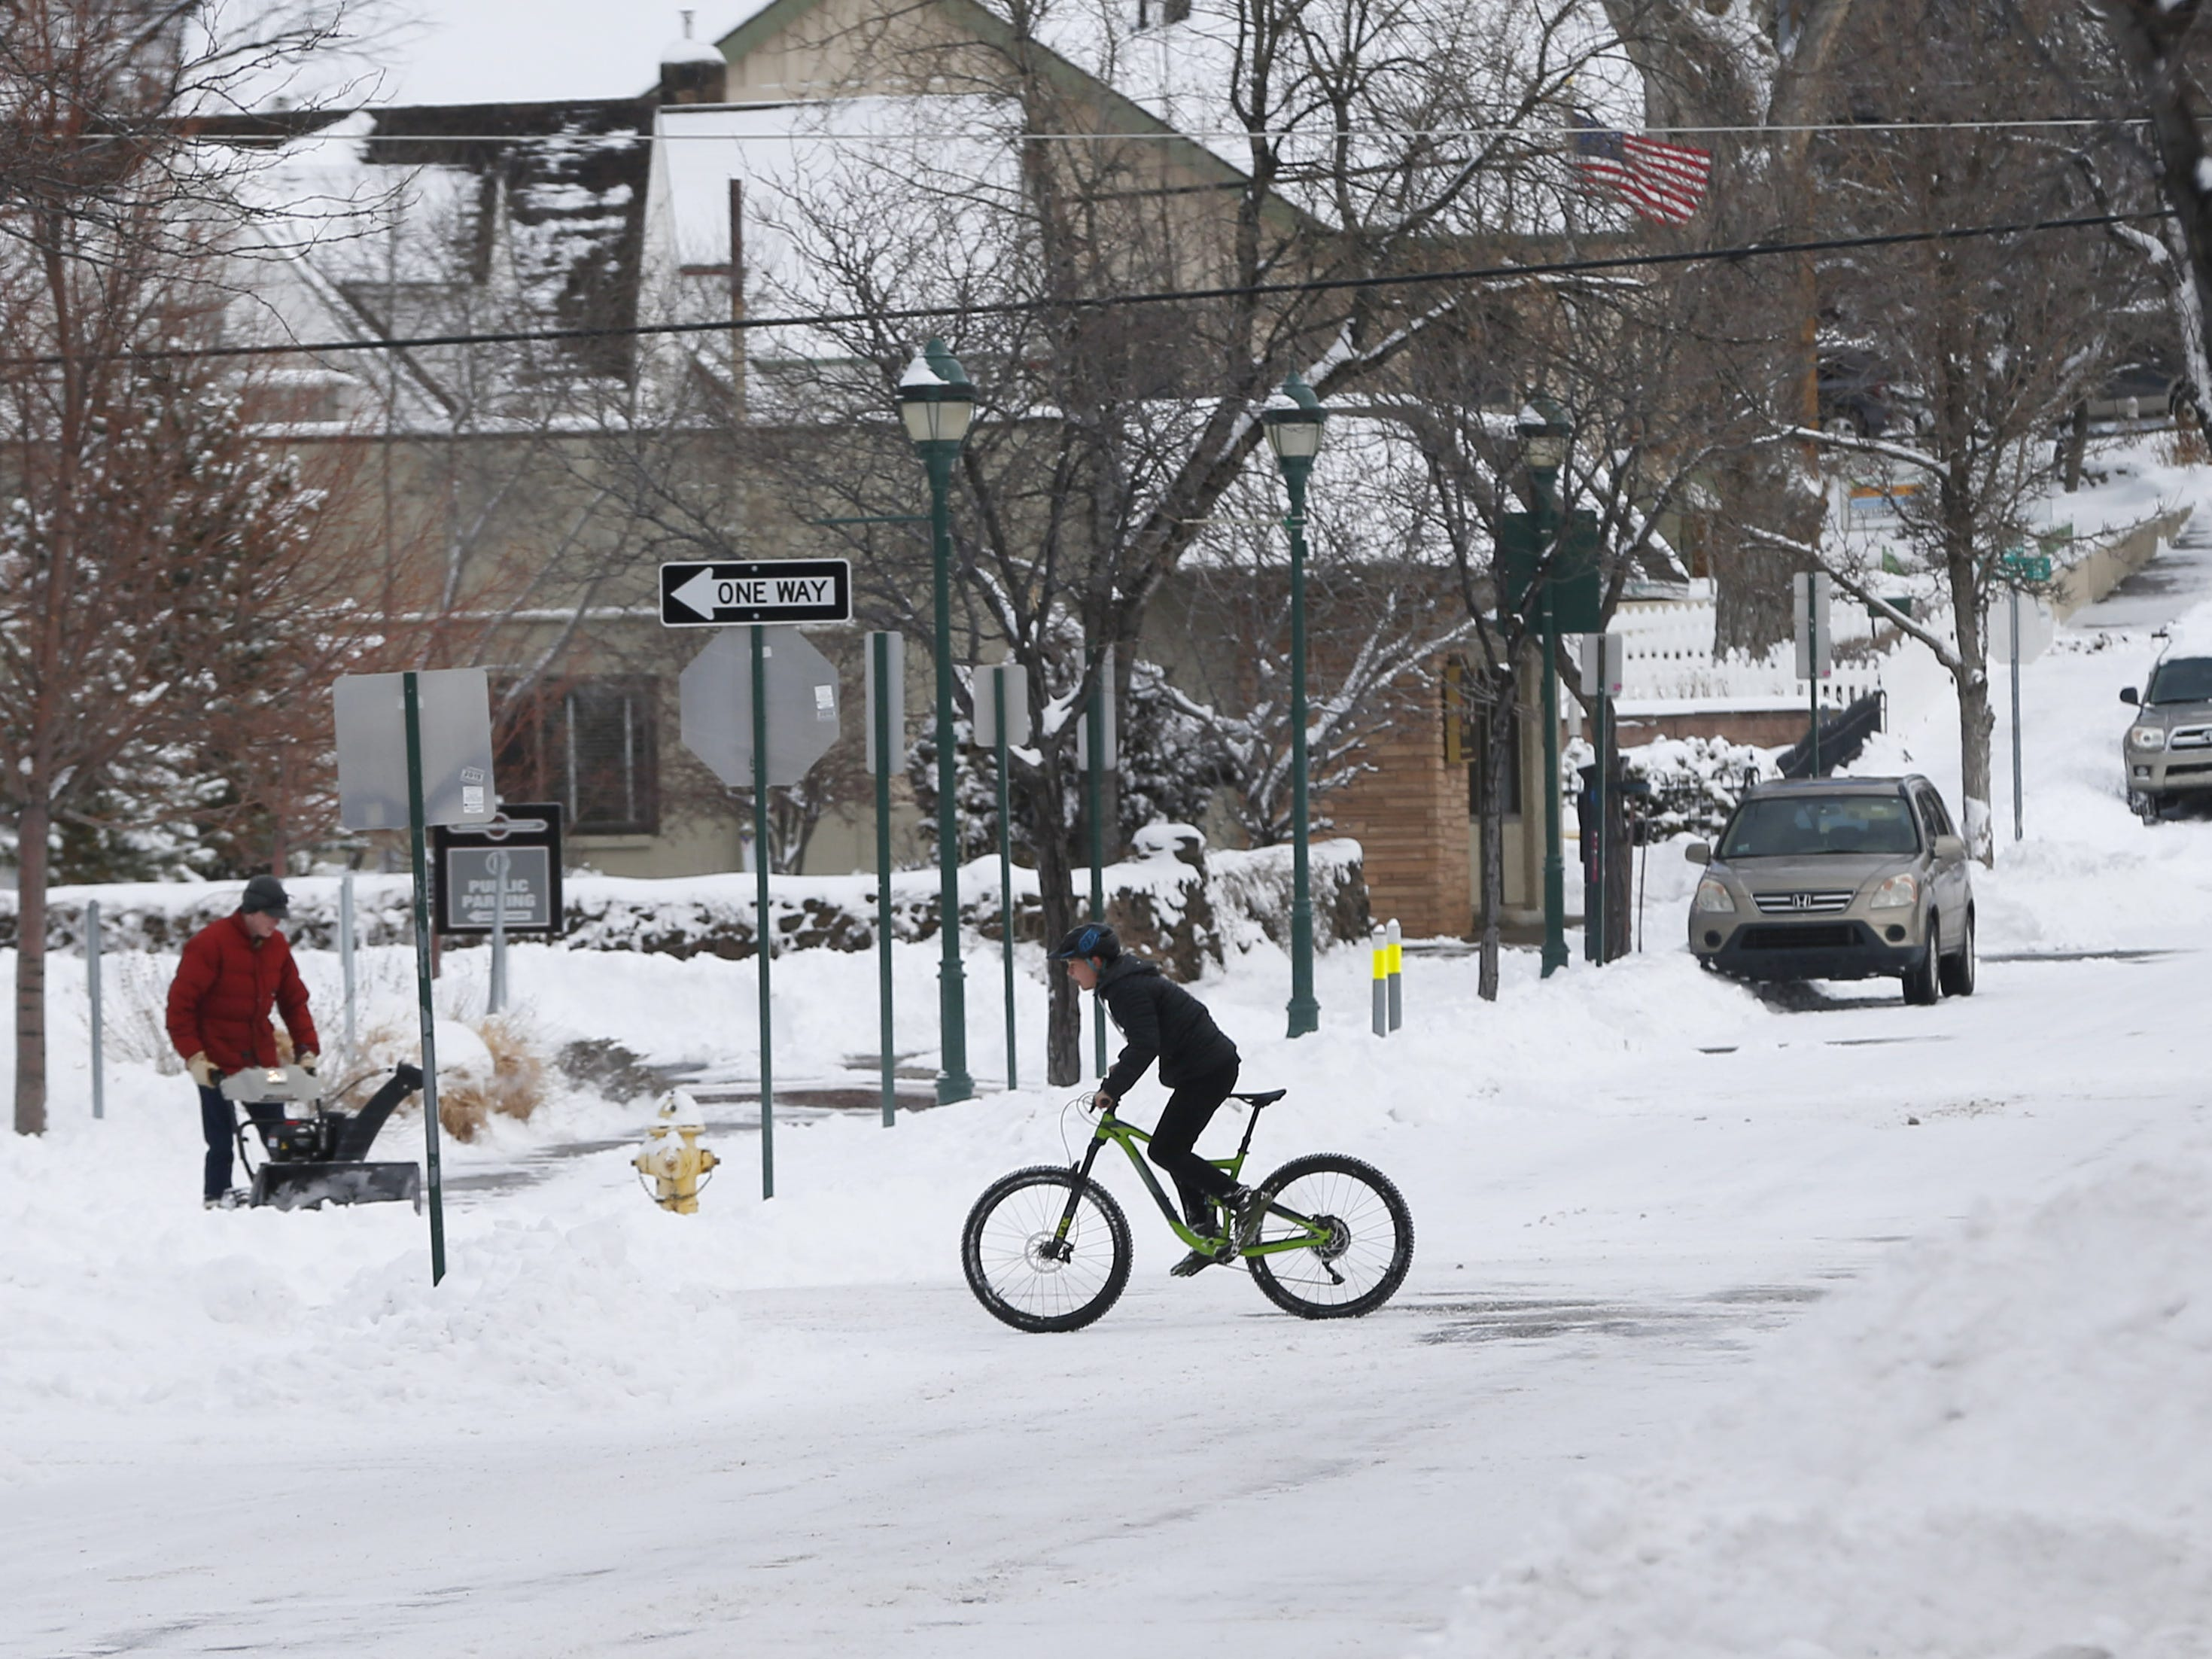 A cyclist rides his bike in downtown Flagstaff, Ariz. on Feb. 18, 2019.